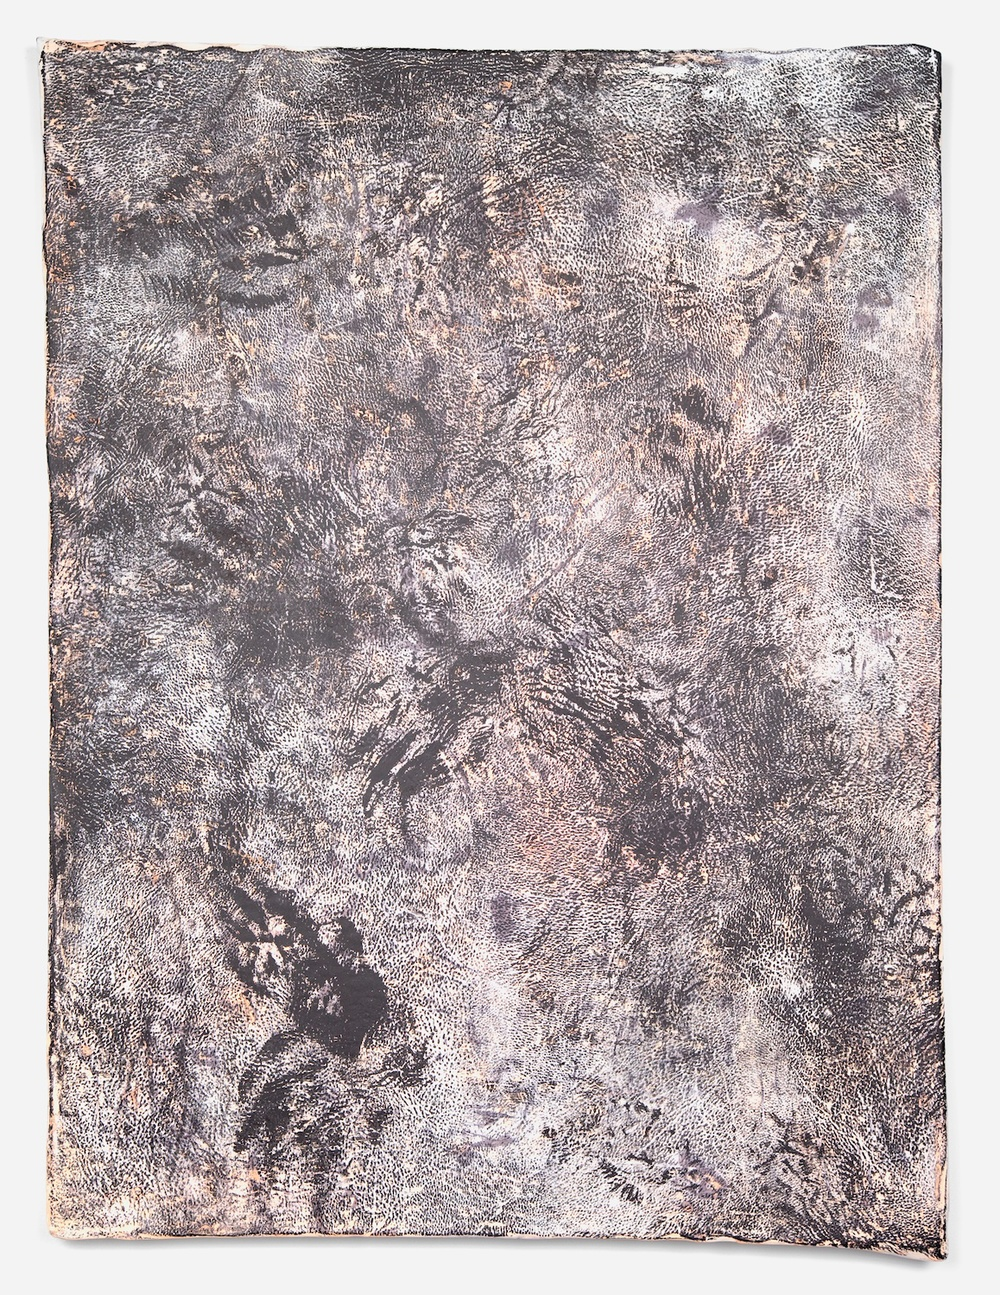 Jay Heikes  Sinks of Gandy  2011 Paper, aluminum, dry pigment, ink, and wood 49 ½h x 36 ⅞w in JH035